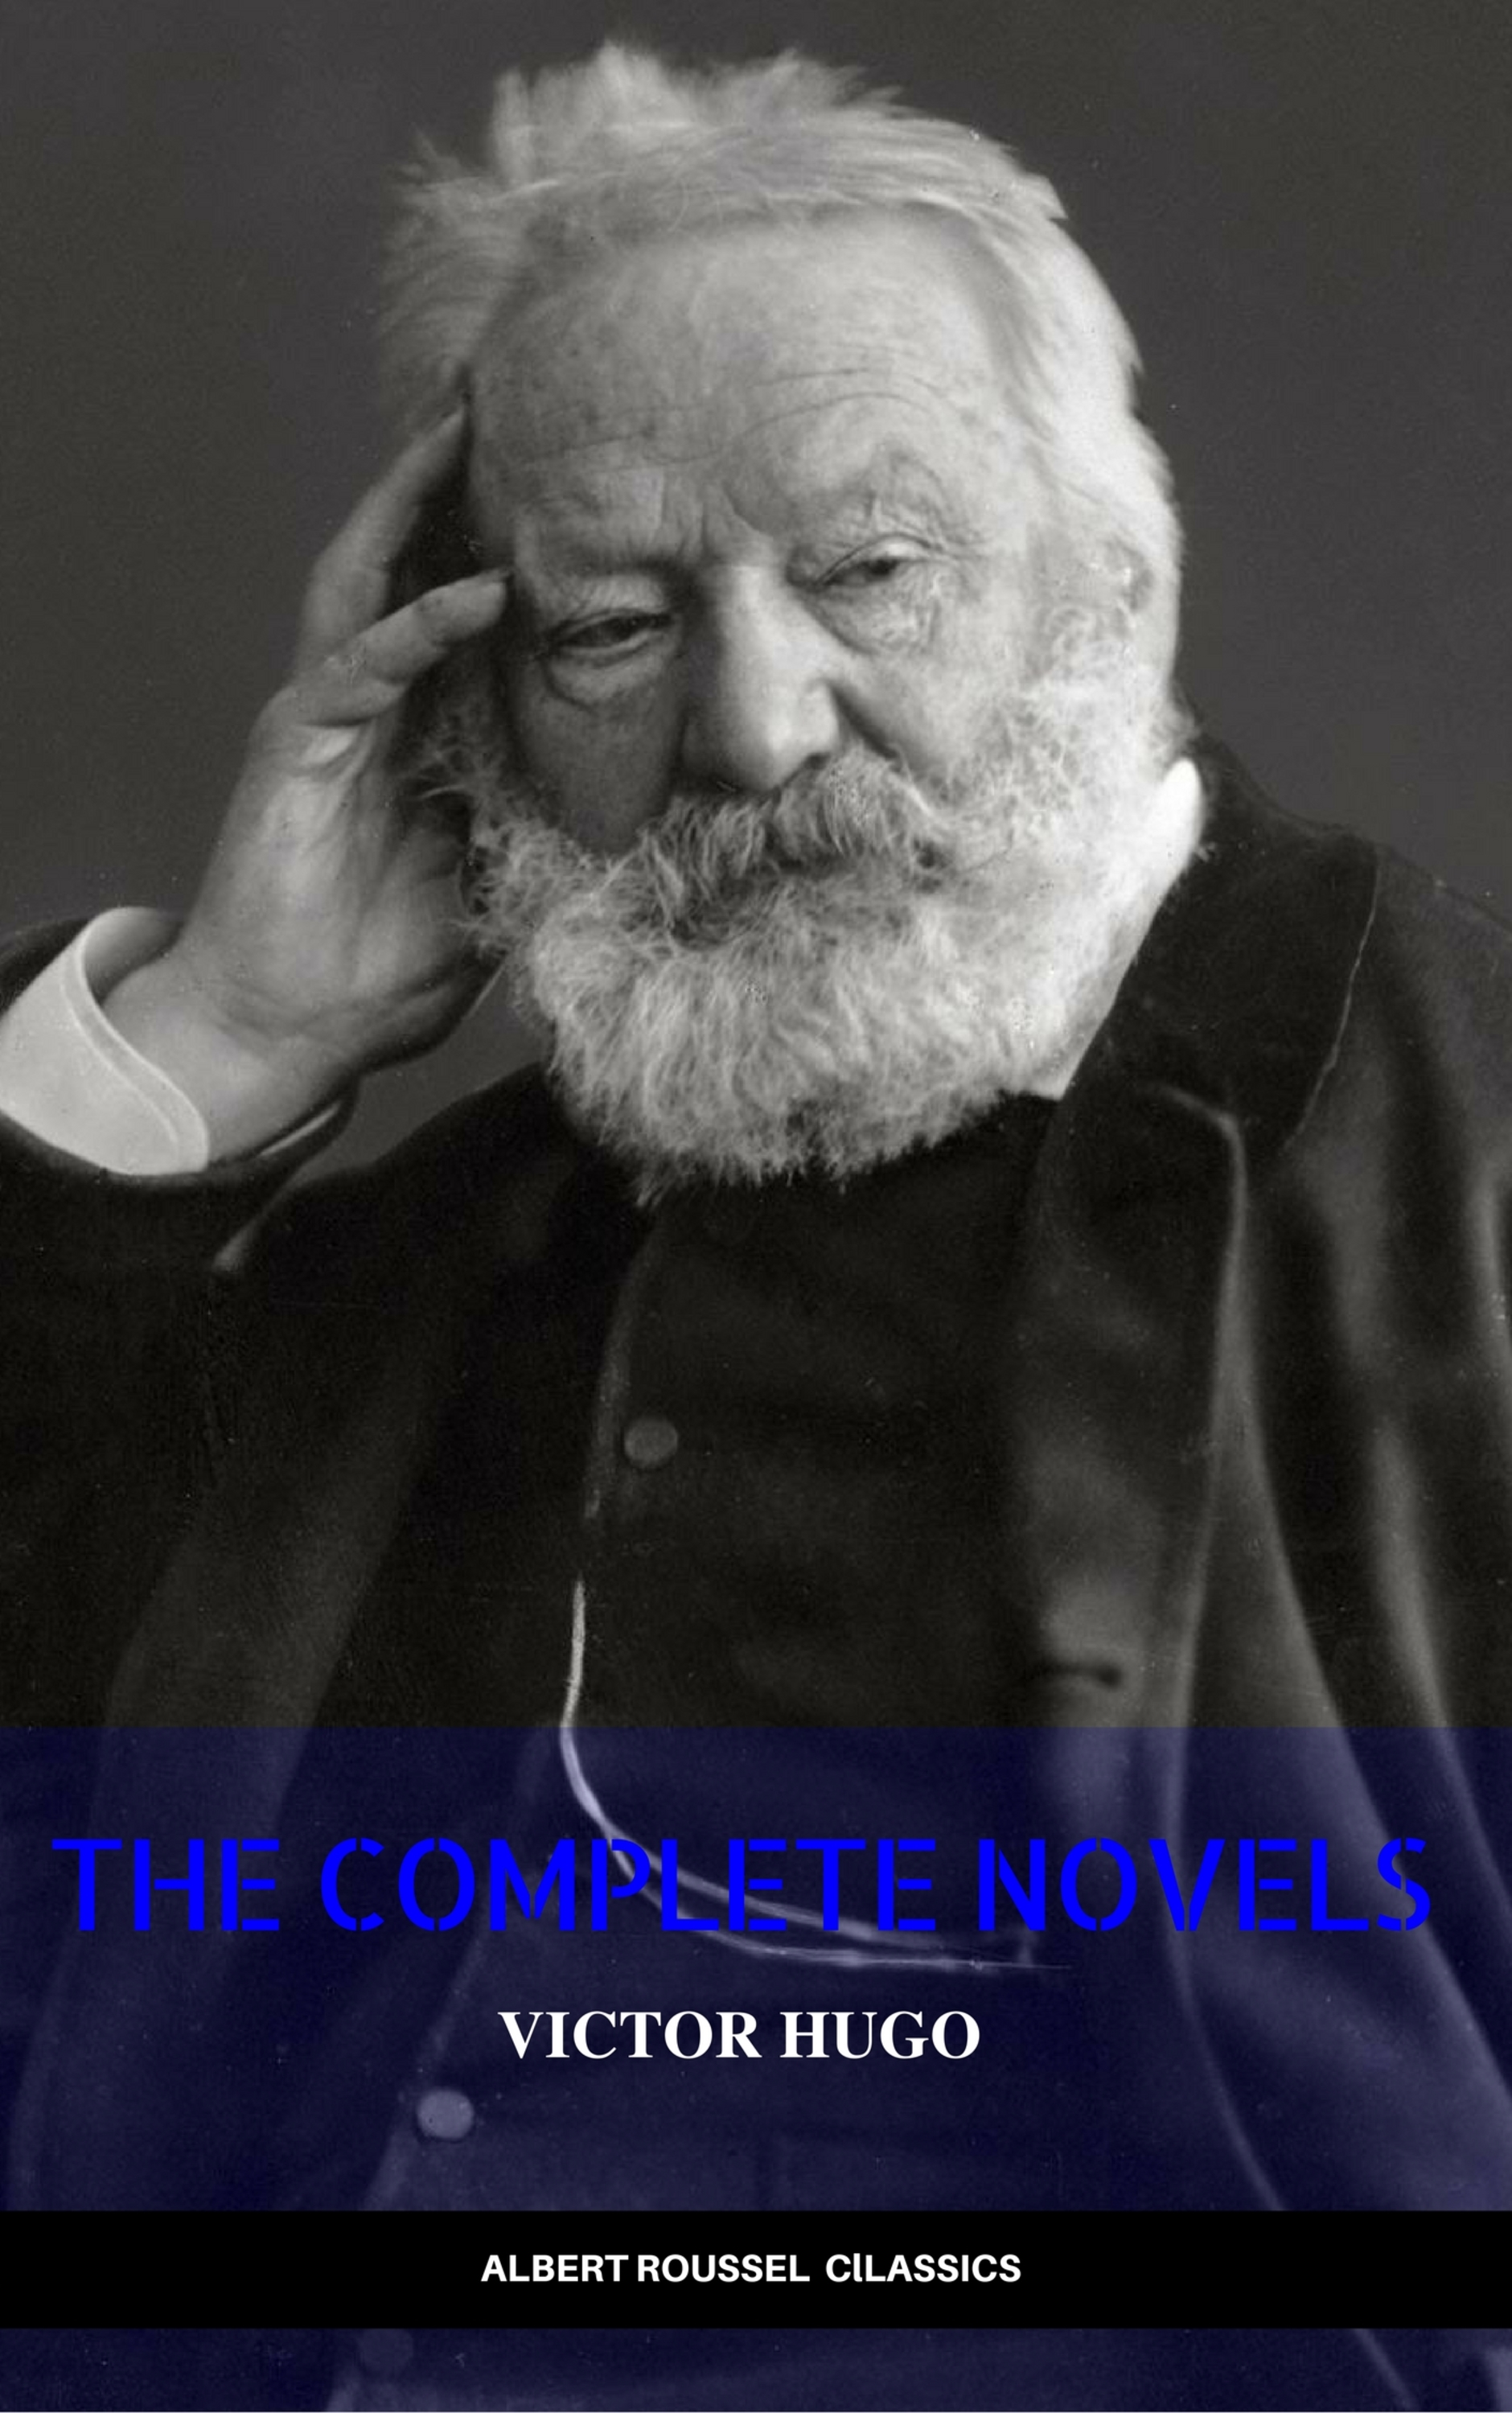 victor hugo the complete novels